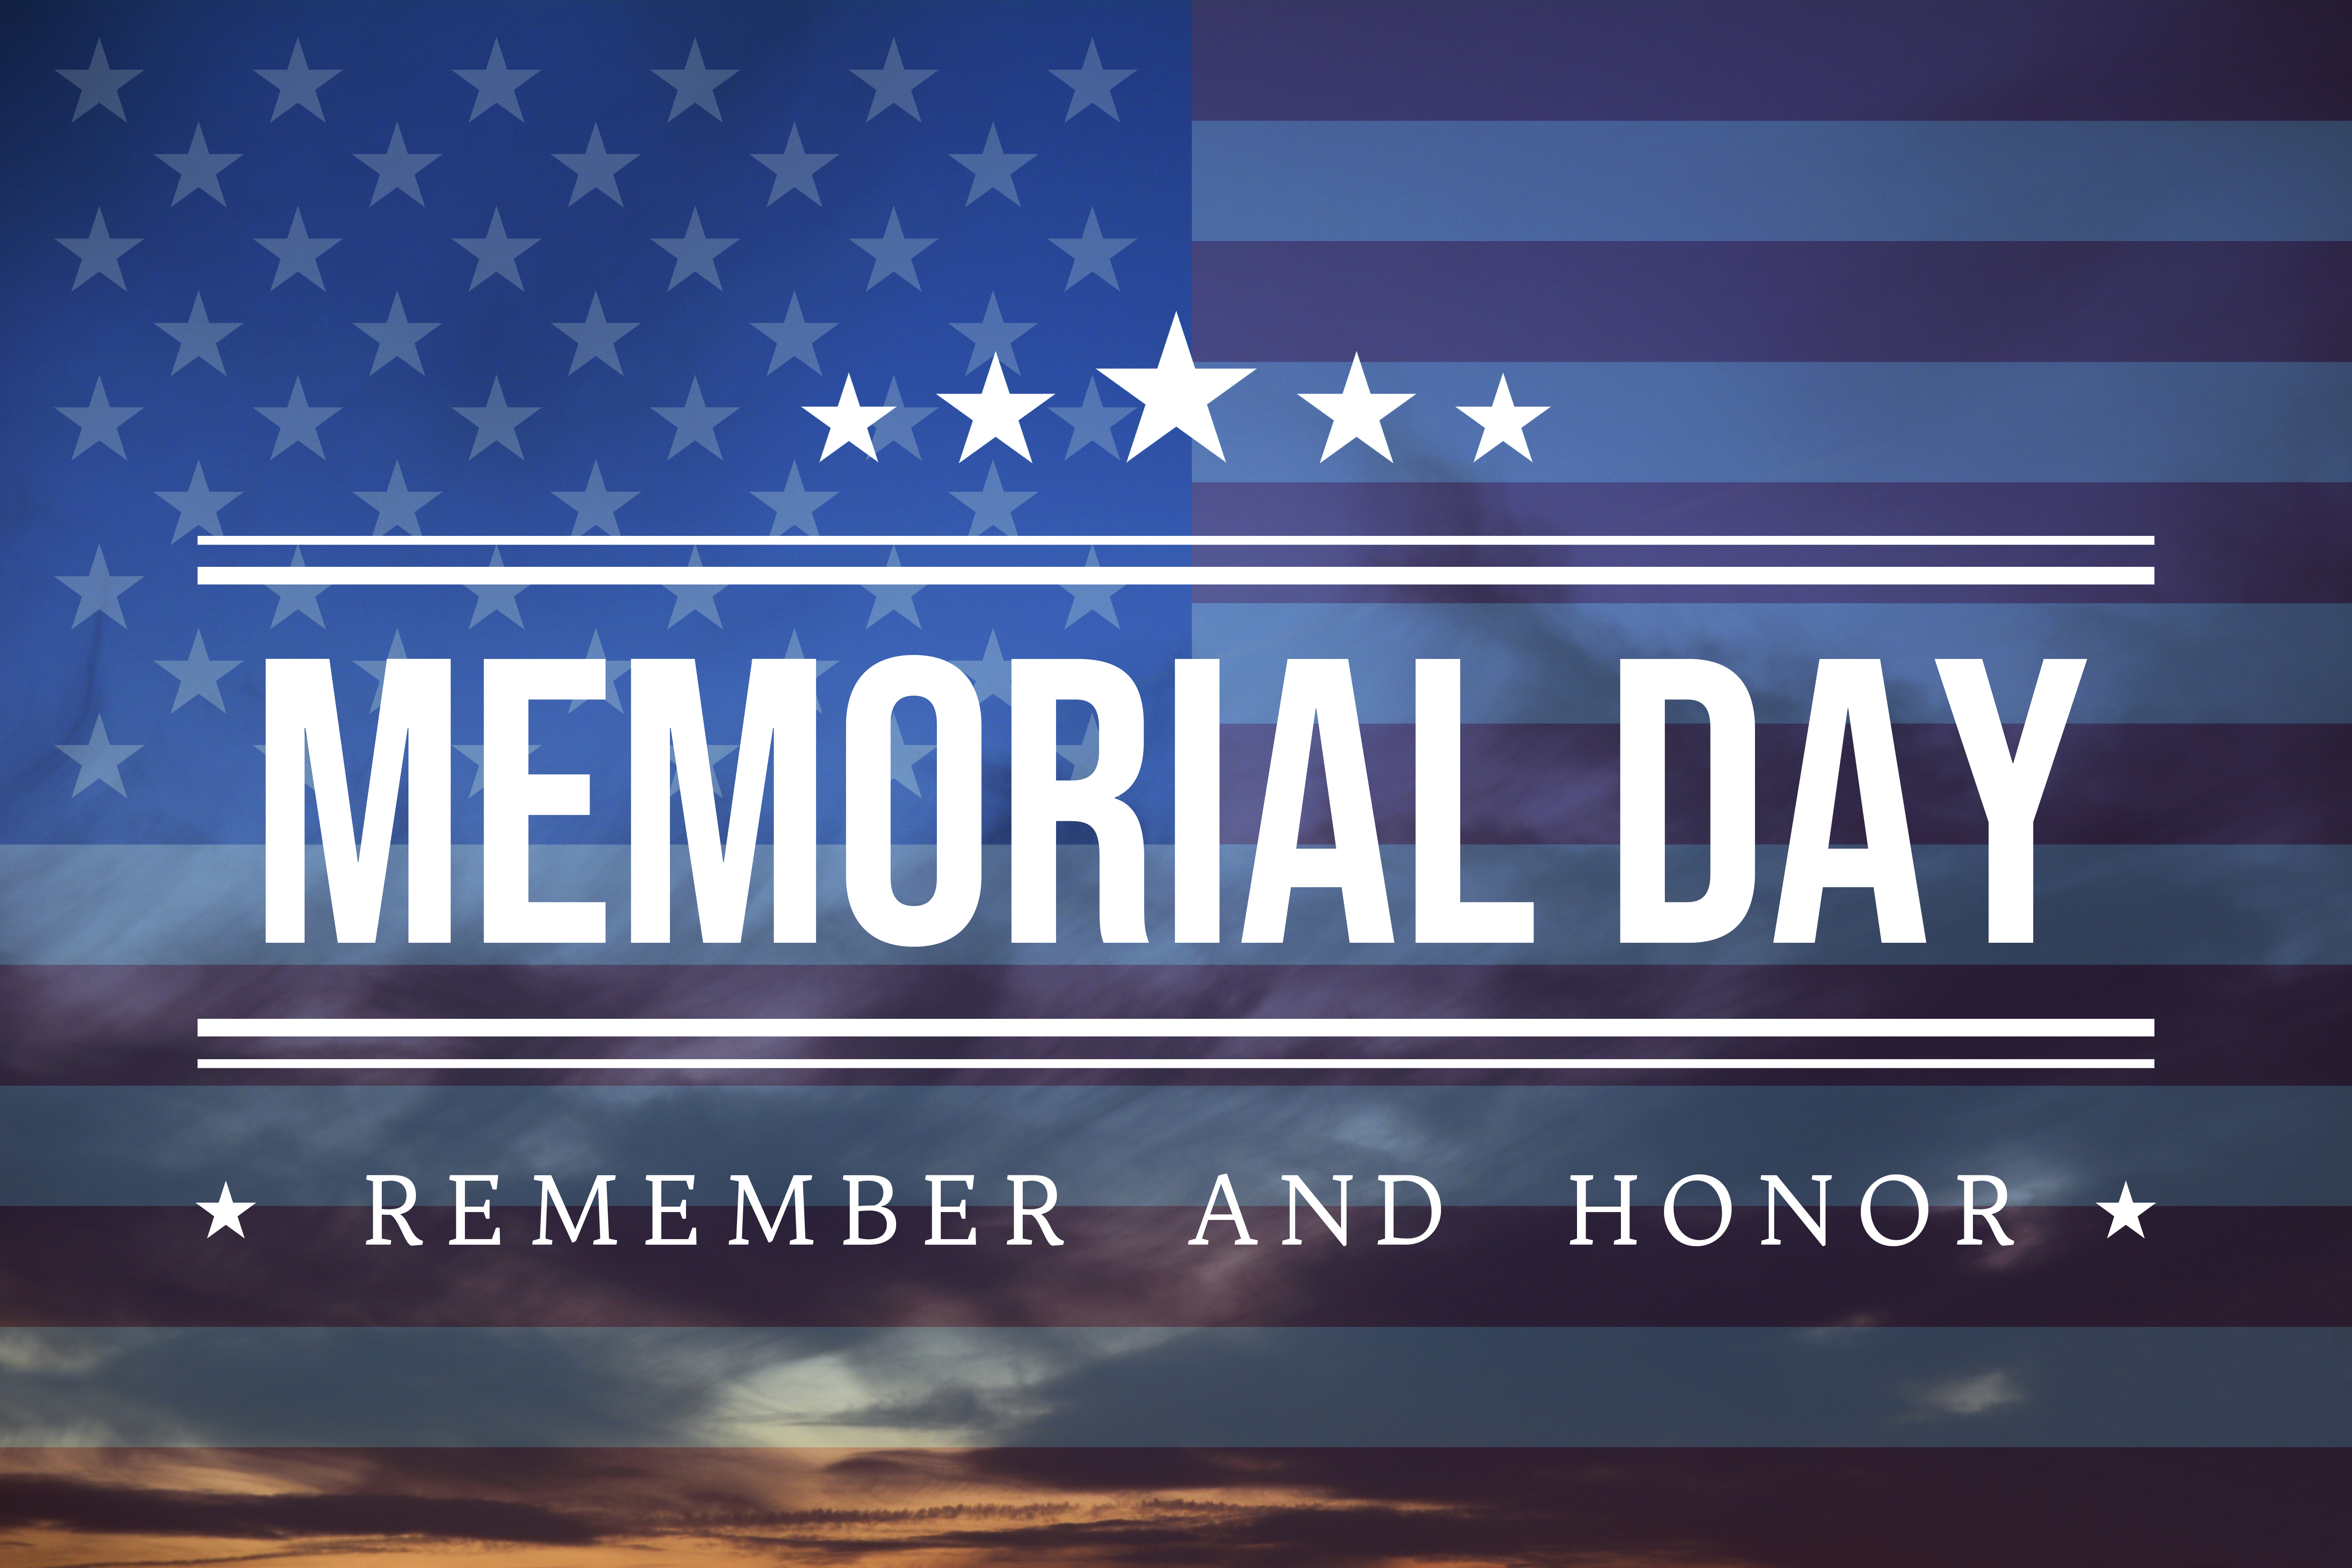 db1570b154 The Difference Between Memorial Day, Veterans Day and Armed Forces Day